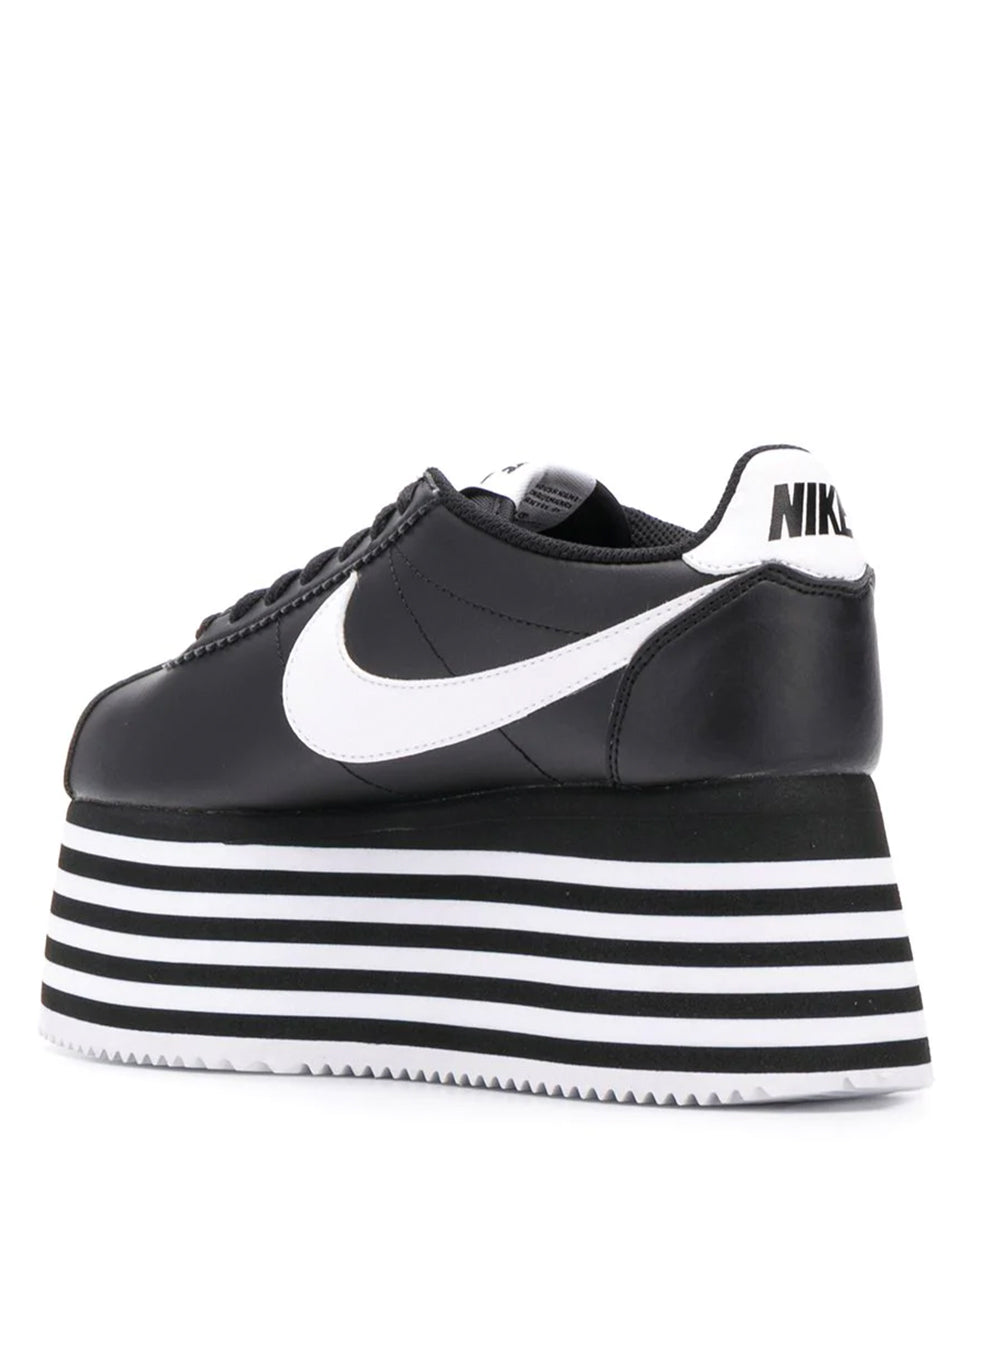 los angeles 57b9b 083bb uk nike cortez sole 10b85 b7ab4